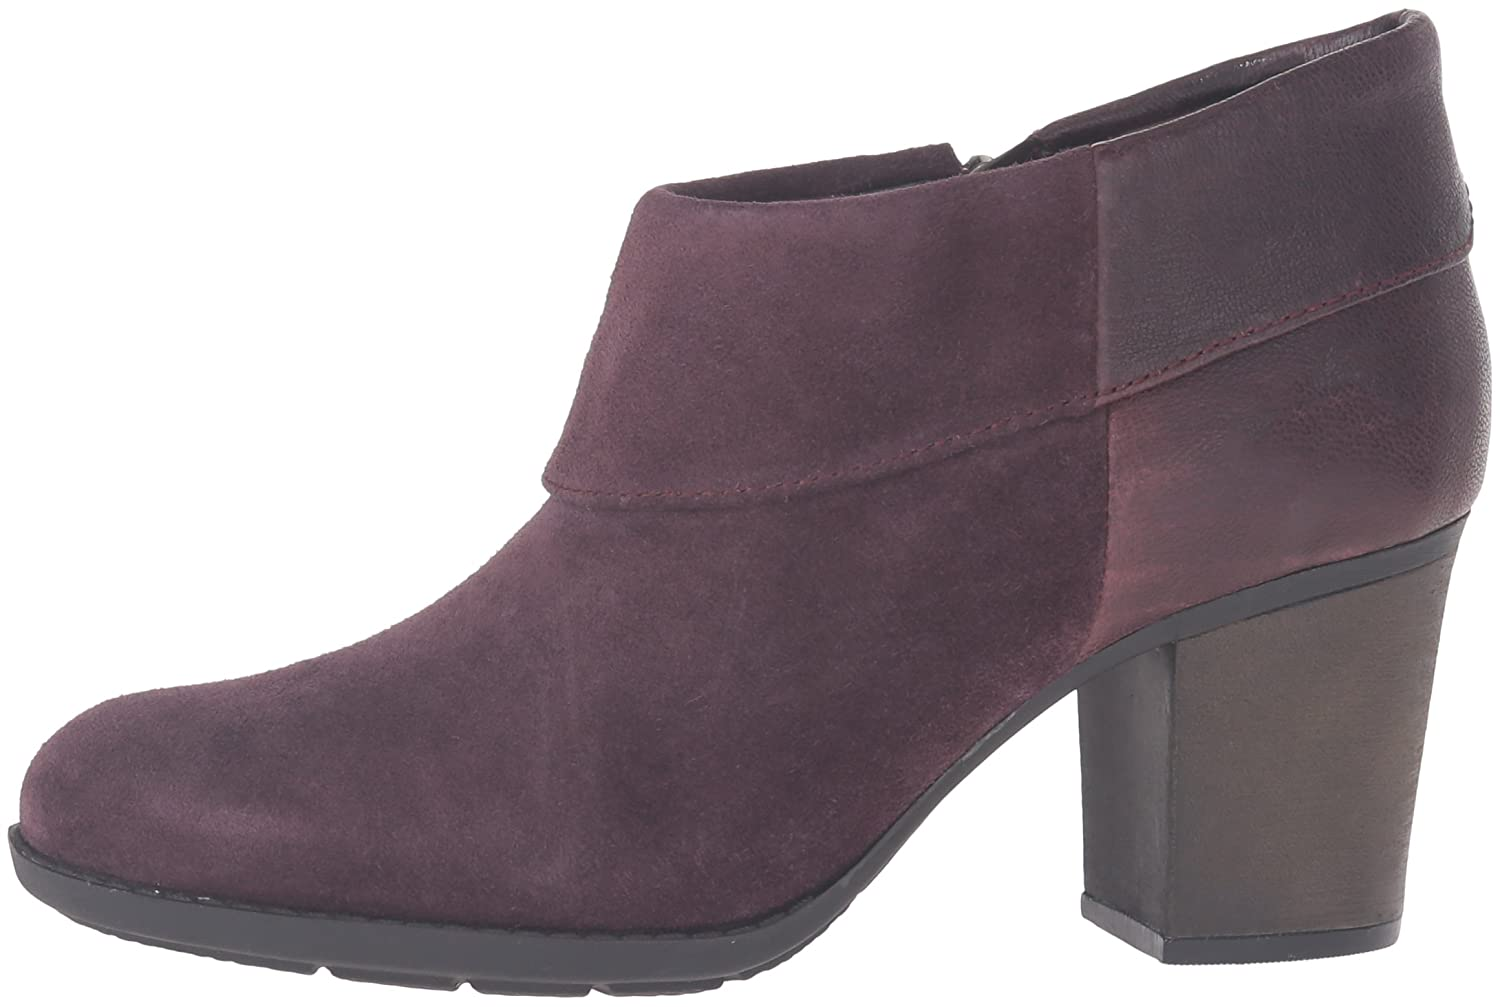 CLARKS Women's Enfield Canal Boot B0198WDQB0 10 B(M) US|Aubergine Suede